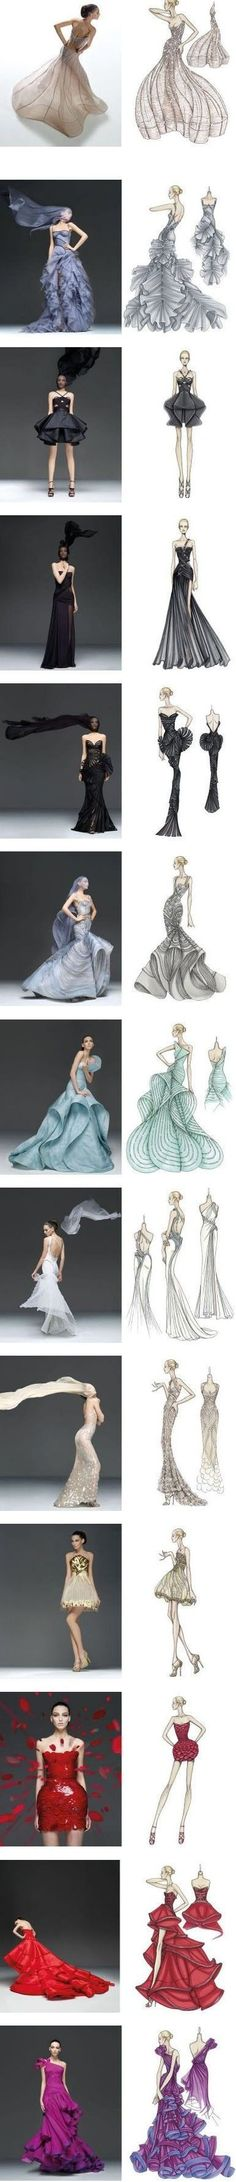 Fashion drawing sketches illustration products 21 New ideas Illustration Mode, Fashion Illustration Sketches, Fashion Sketchbook, Fashion Design Sketches, Sketchbook Ideas, Fashion Drawings, Design Illustrations, Fashion Designers, Arte Fashion